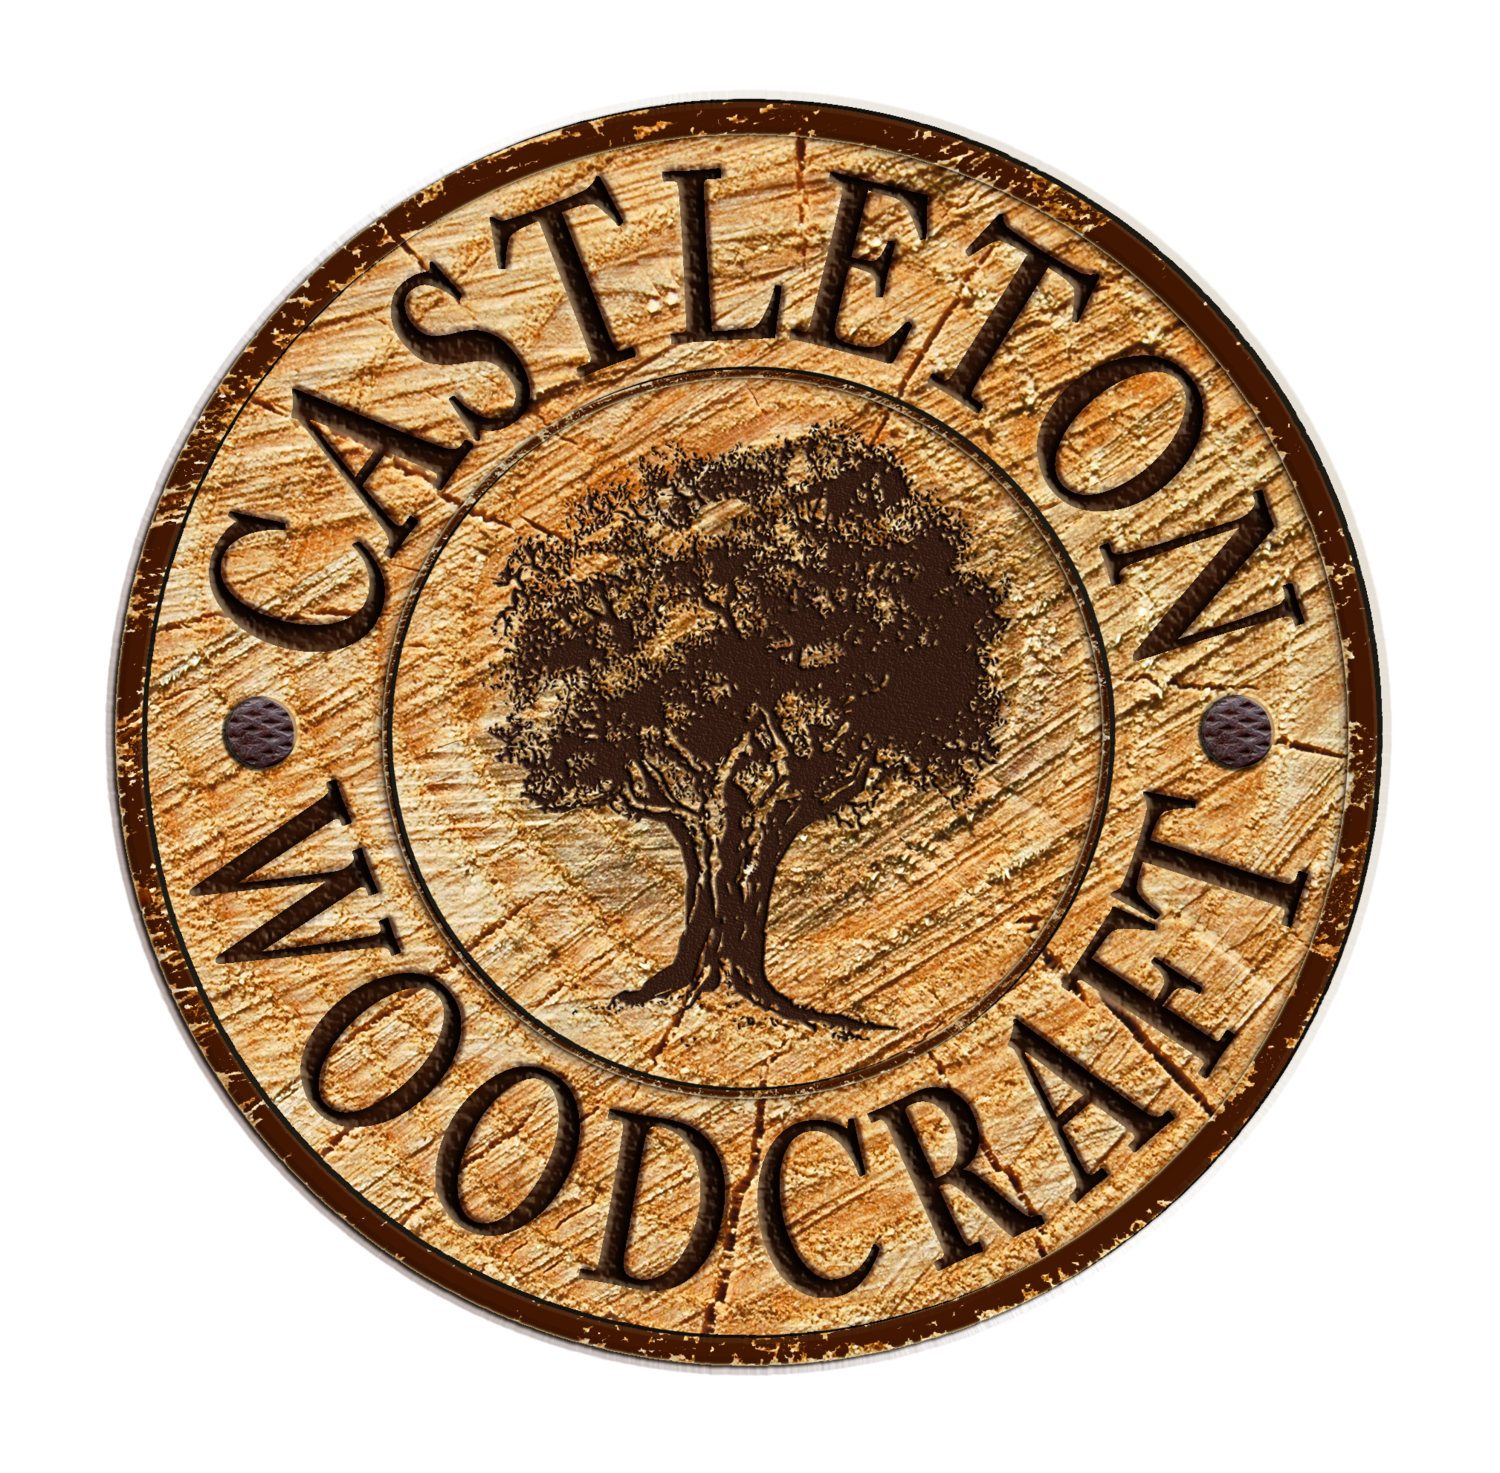 Castleton Woodcraft